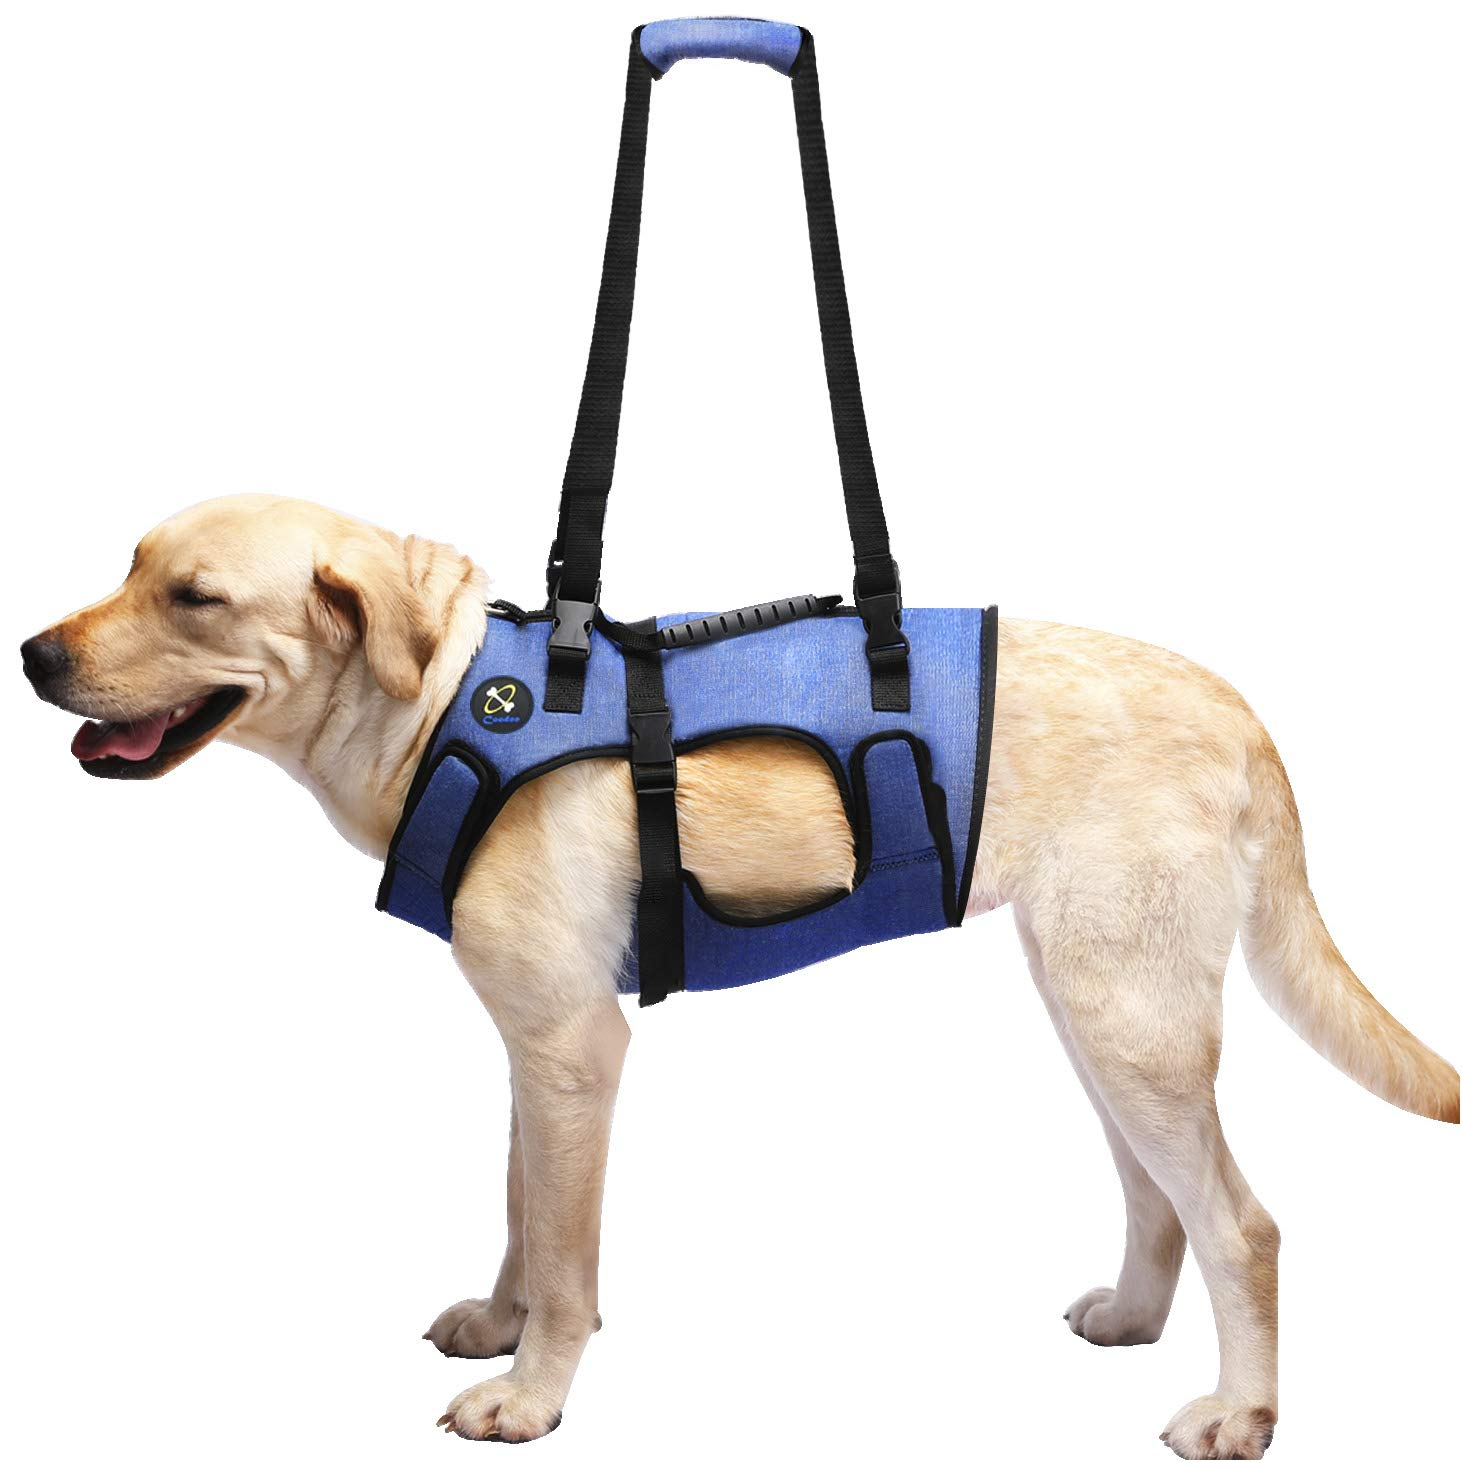 COODEO Dog Lift Harness, Full Body Support & Recovery Sling, Pet Rehabilitation Lifts Vest Adjustable Breathable Straps…